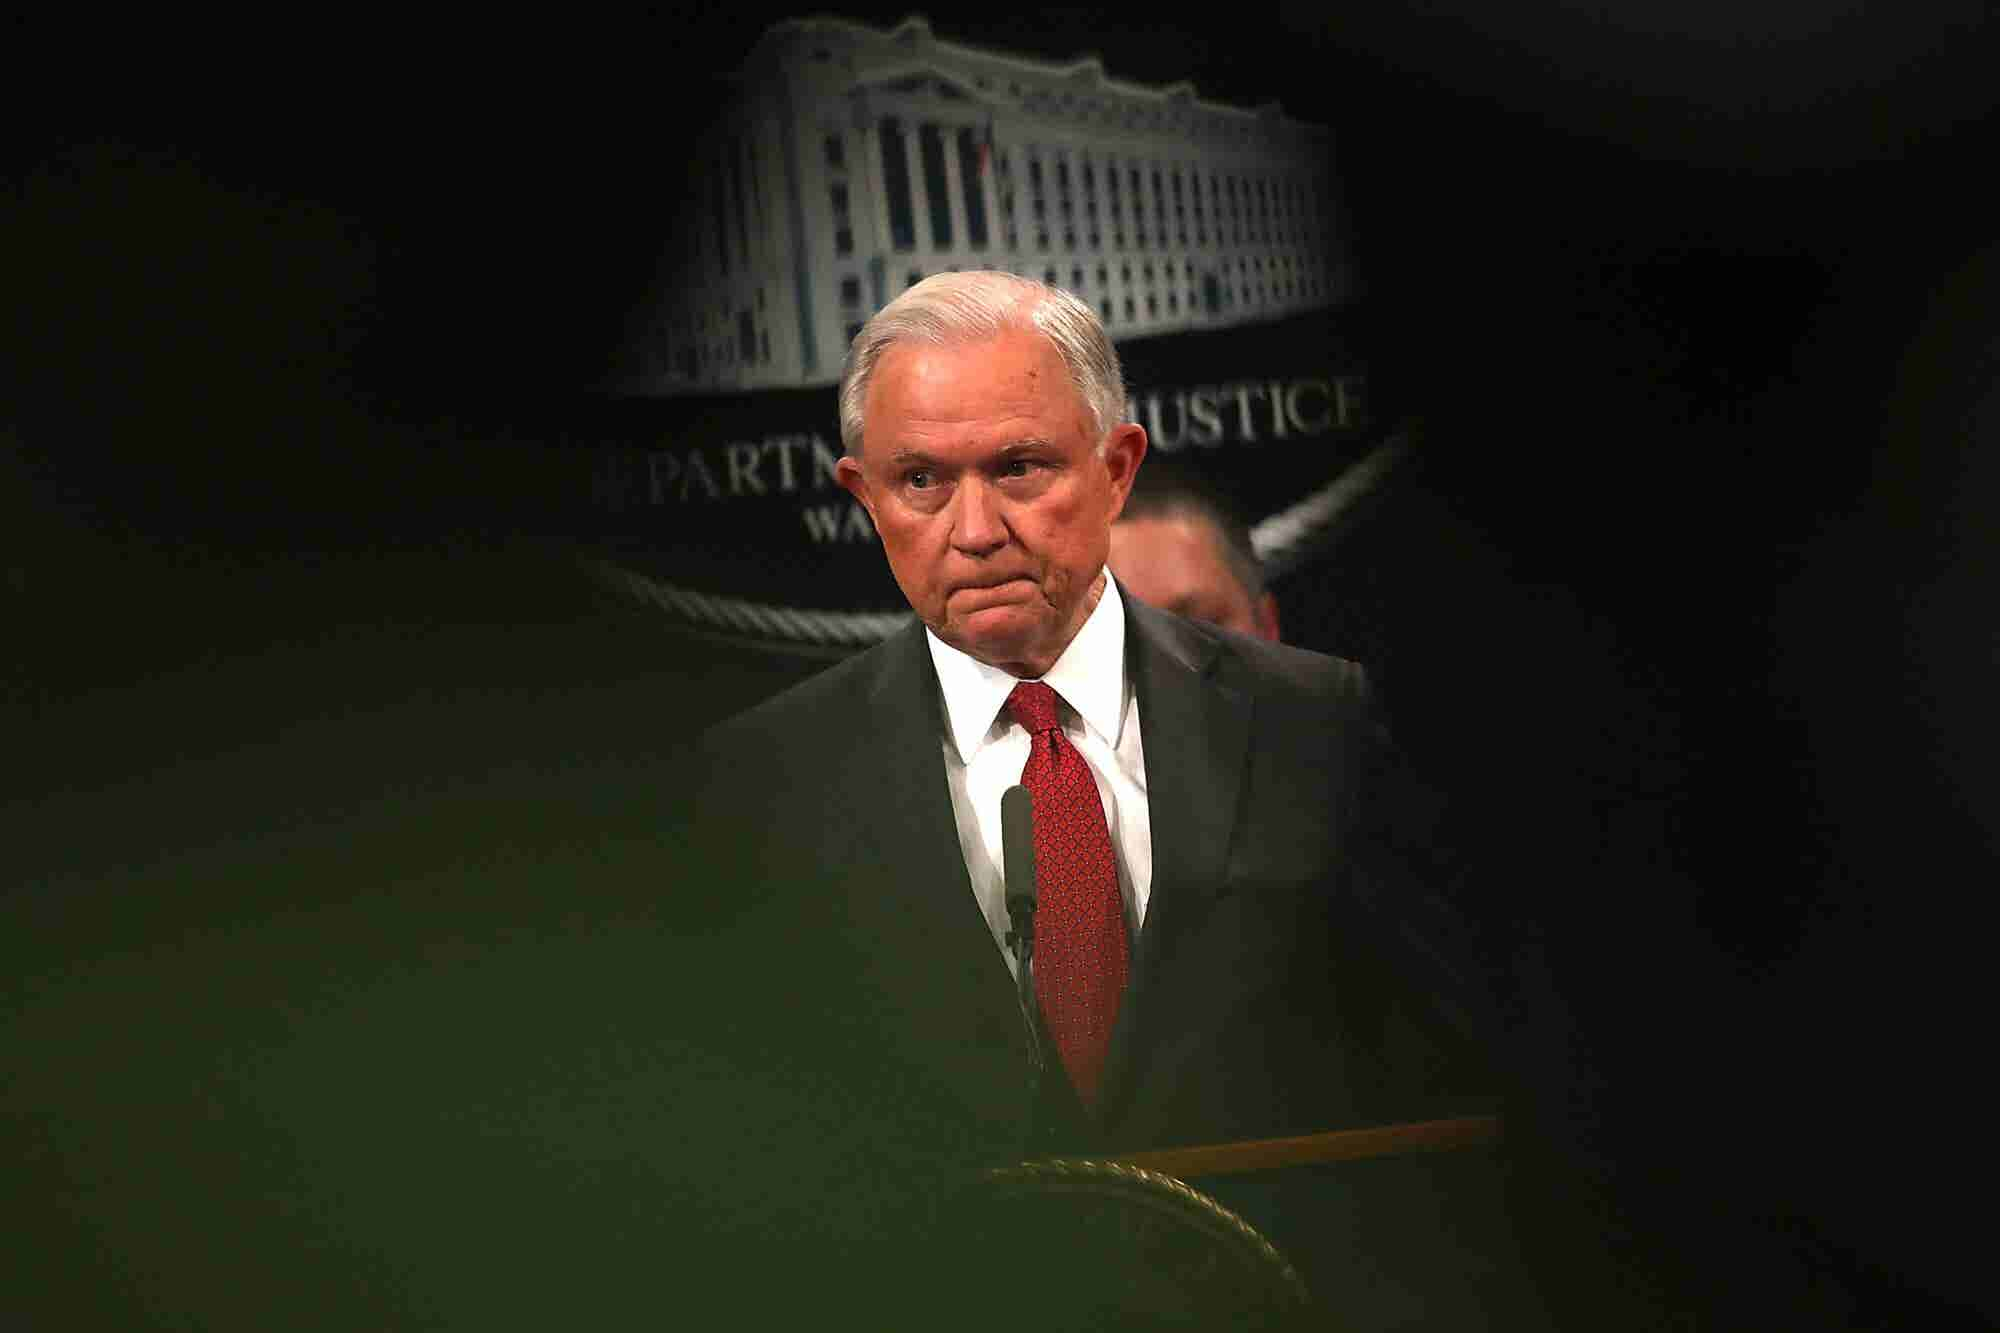 10 Cannabis Executives Predict How AG Jeff Sessions' Retirement Will Affect the Marijuana Industry